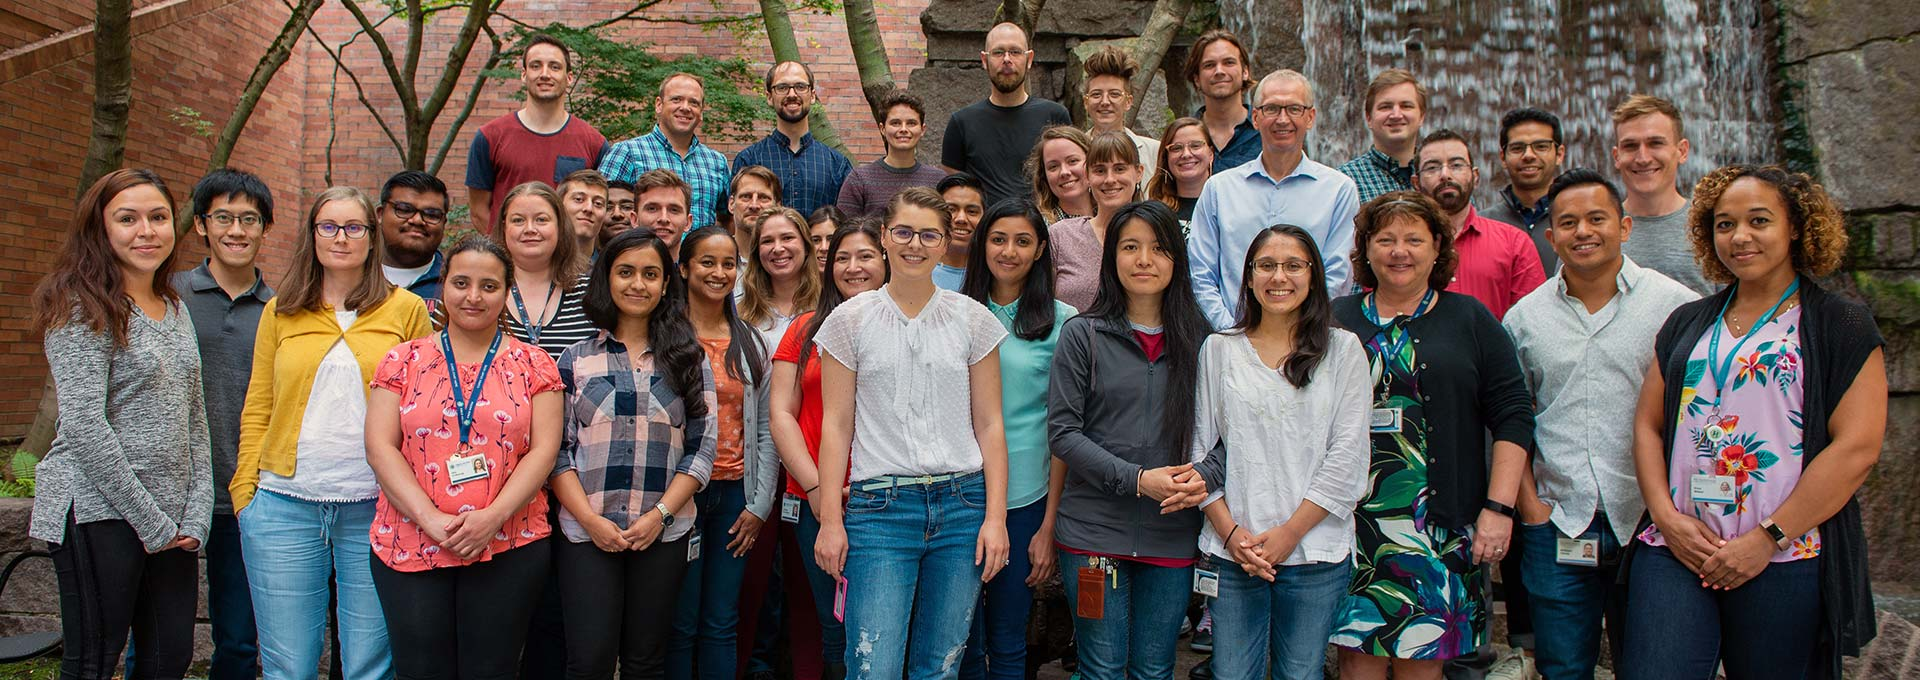 A group photo of members of the Kiem Lab